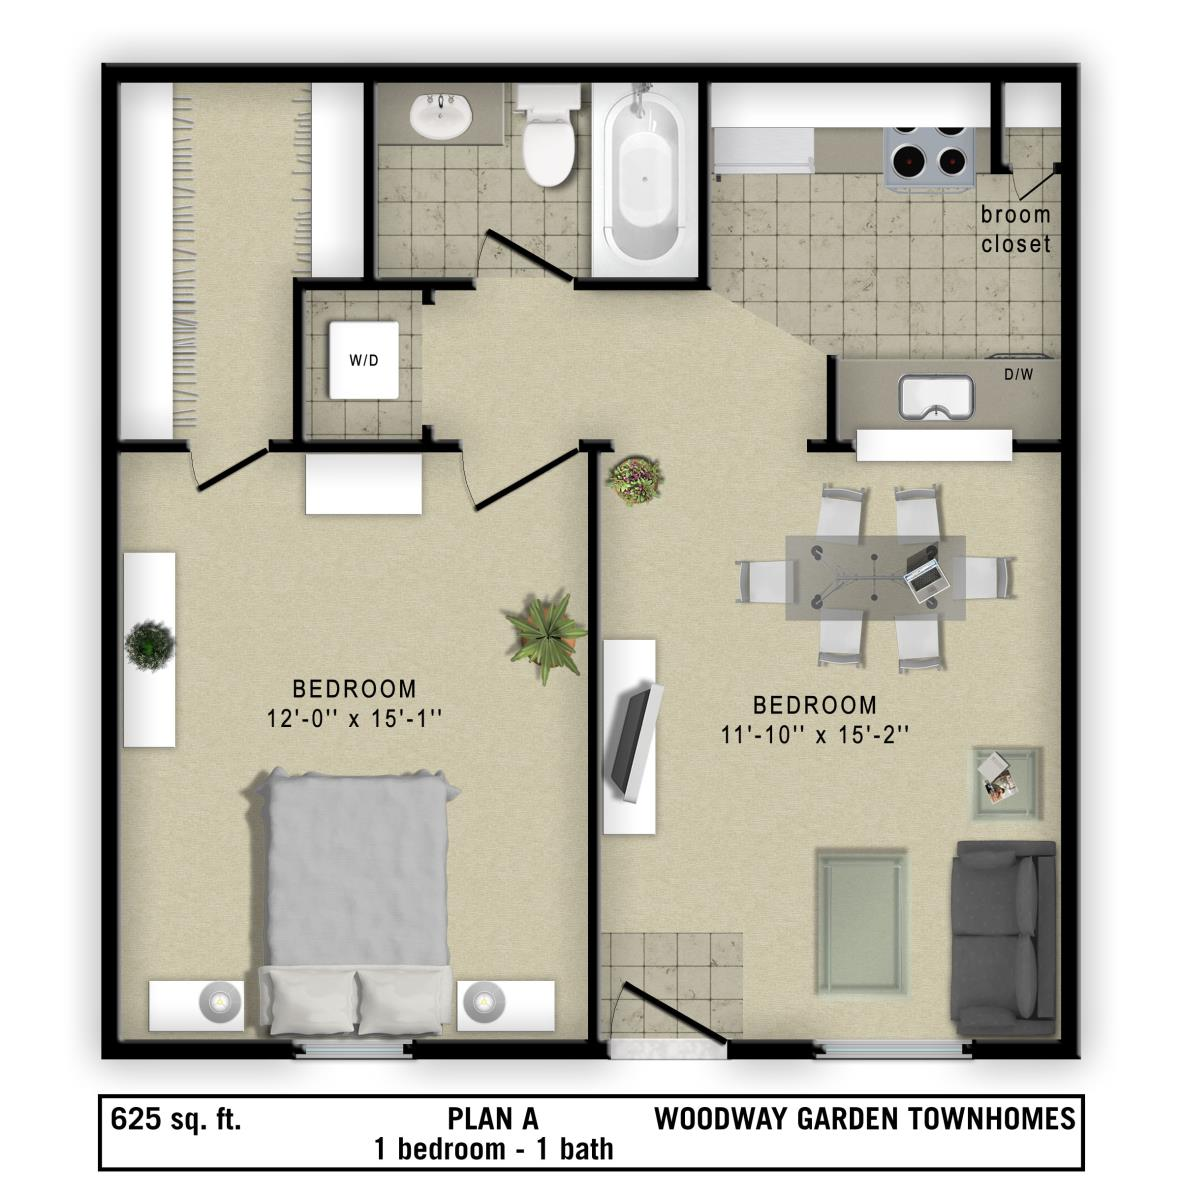 625 sq. ft. 2 floor plan